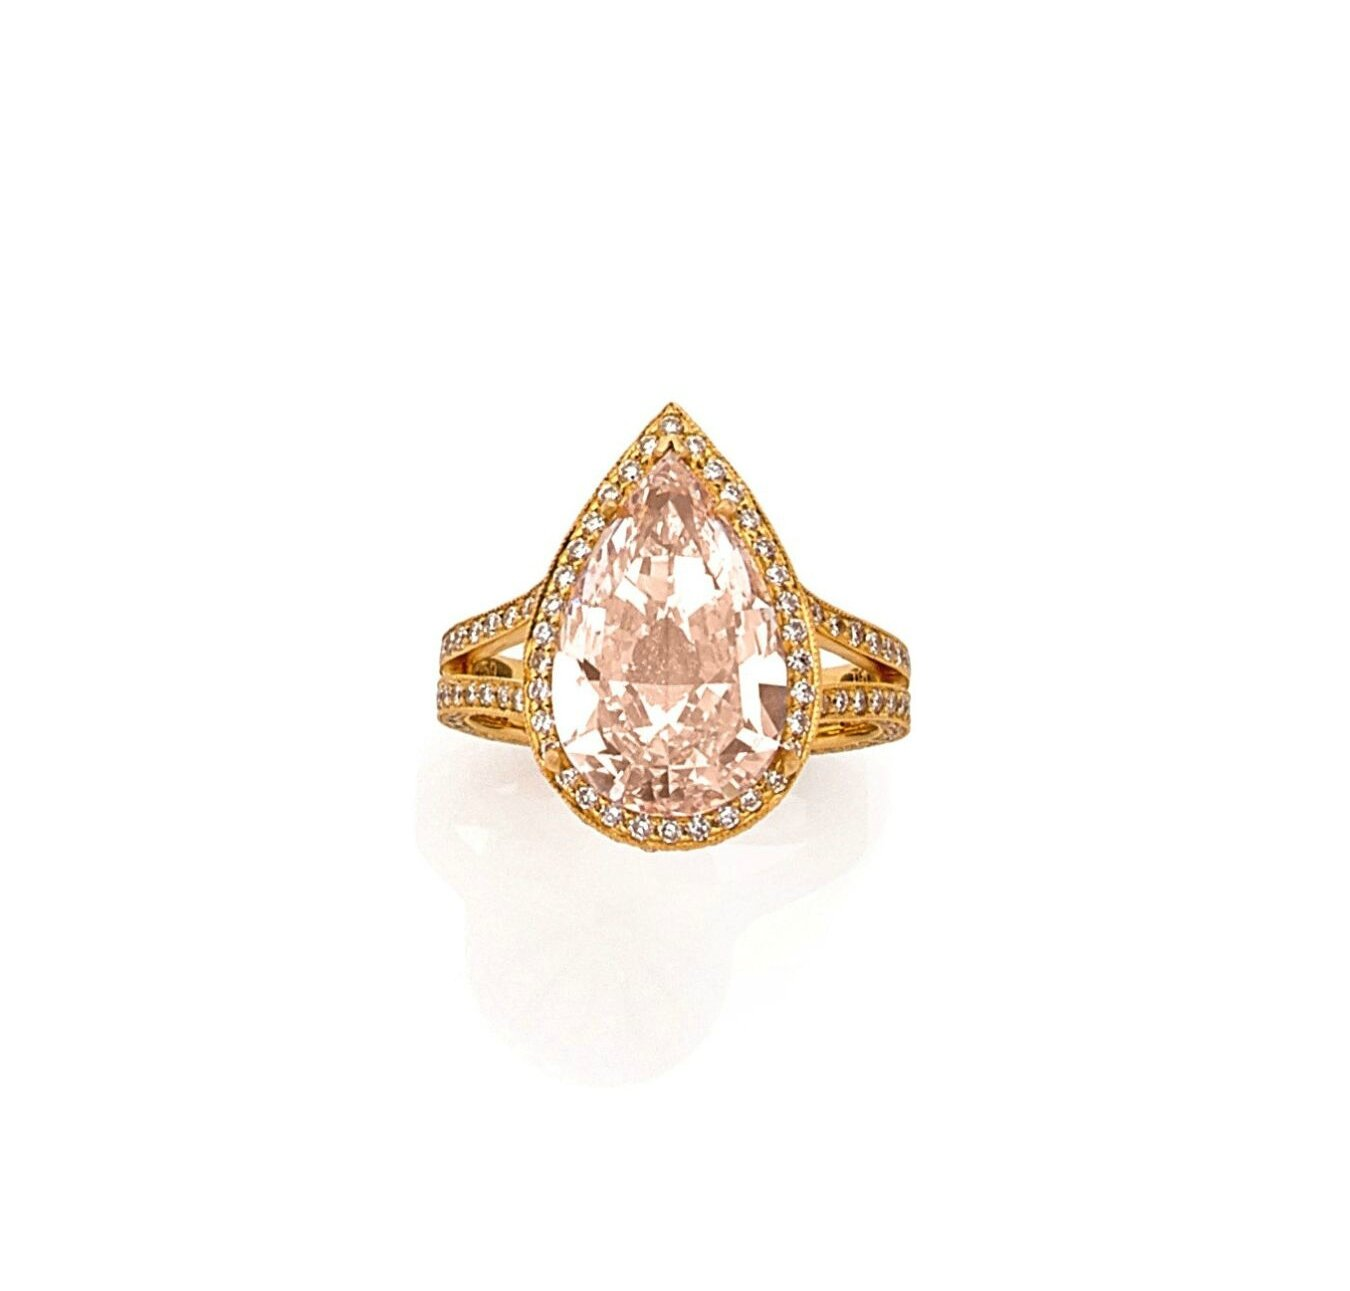 "Bague ornée d'un diamant ""Fancy Light Pink"" piriforme"